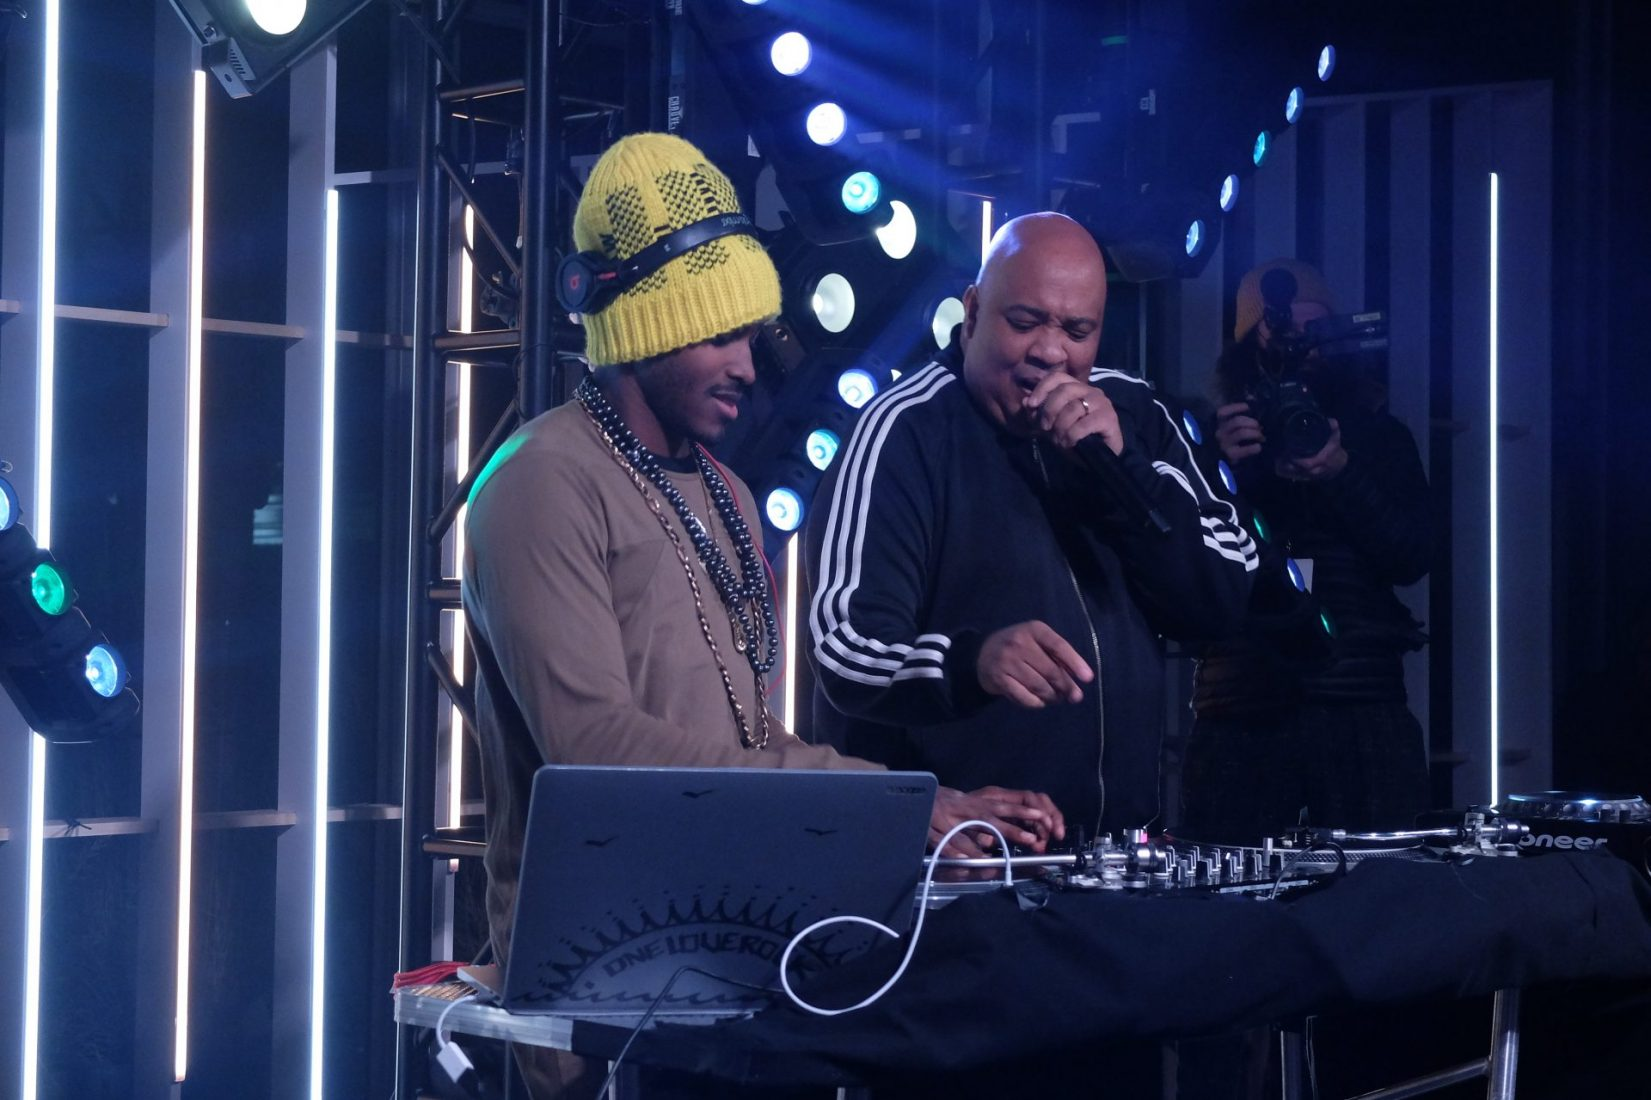 Breaking Ice with Rev Run & DJ Ruckus at the Seaport